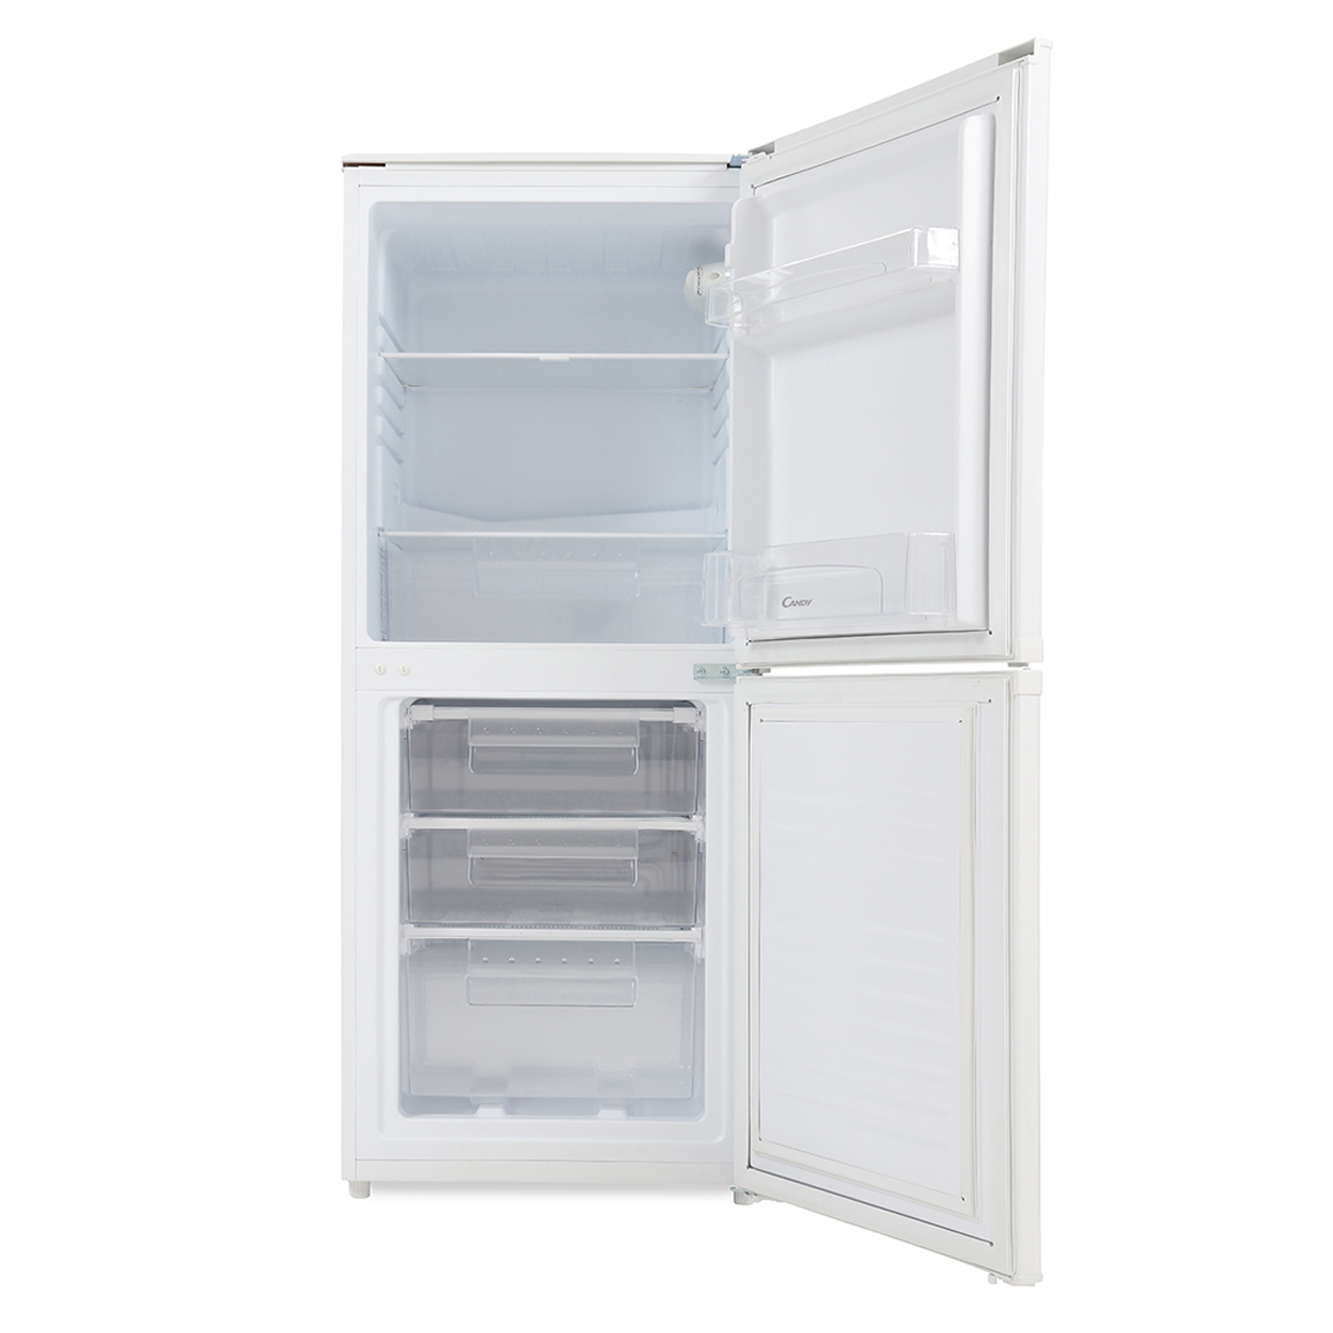 Refrigerators Candy (Kandy): models, reviews about the manufacturer, comparison with competitors 89